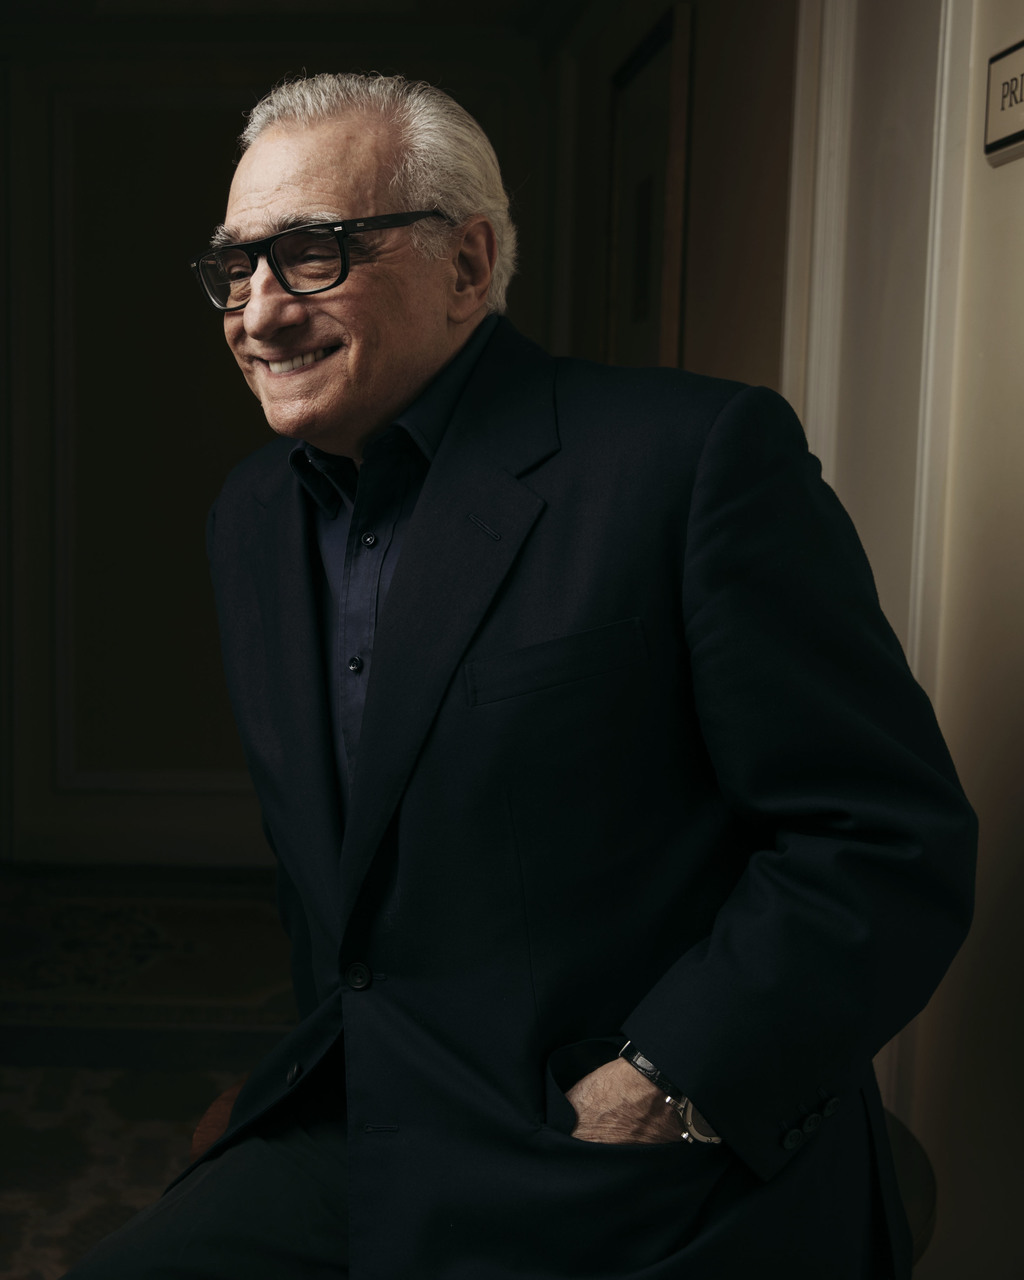 In this Dec. 9, 2016 photo, producer and director Martin Scorsese poses for a portrait in New York. (Photo by Victoria Will/Invision/AP...